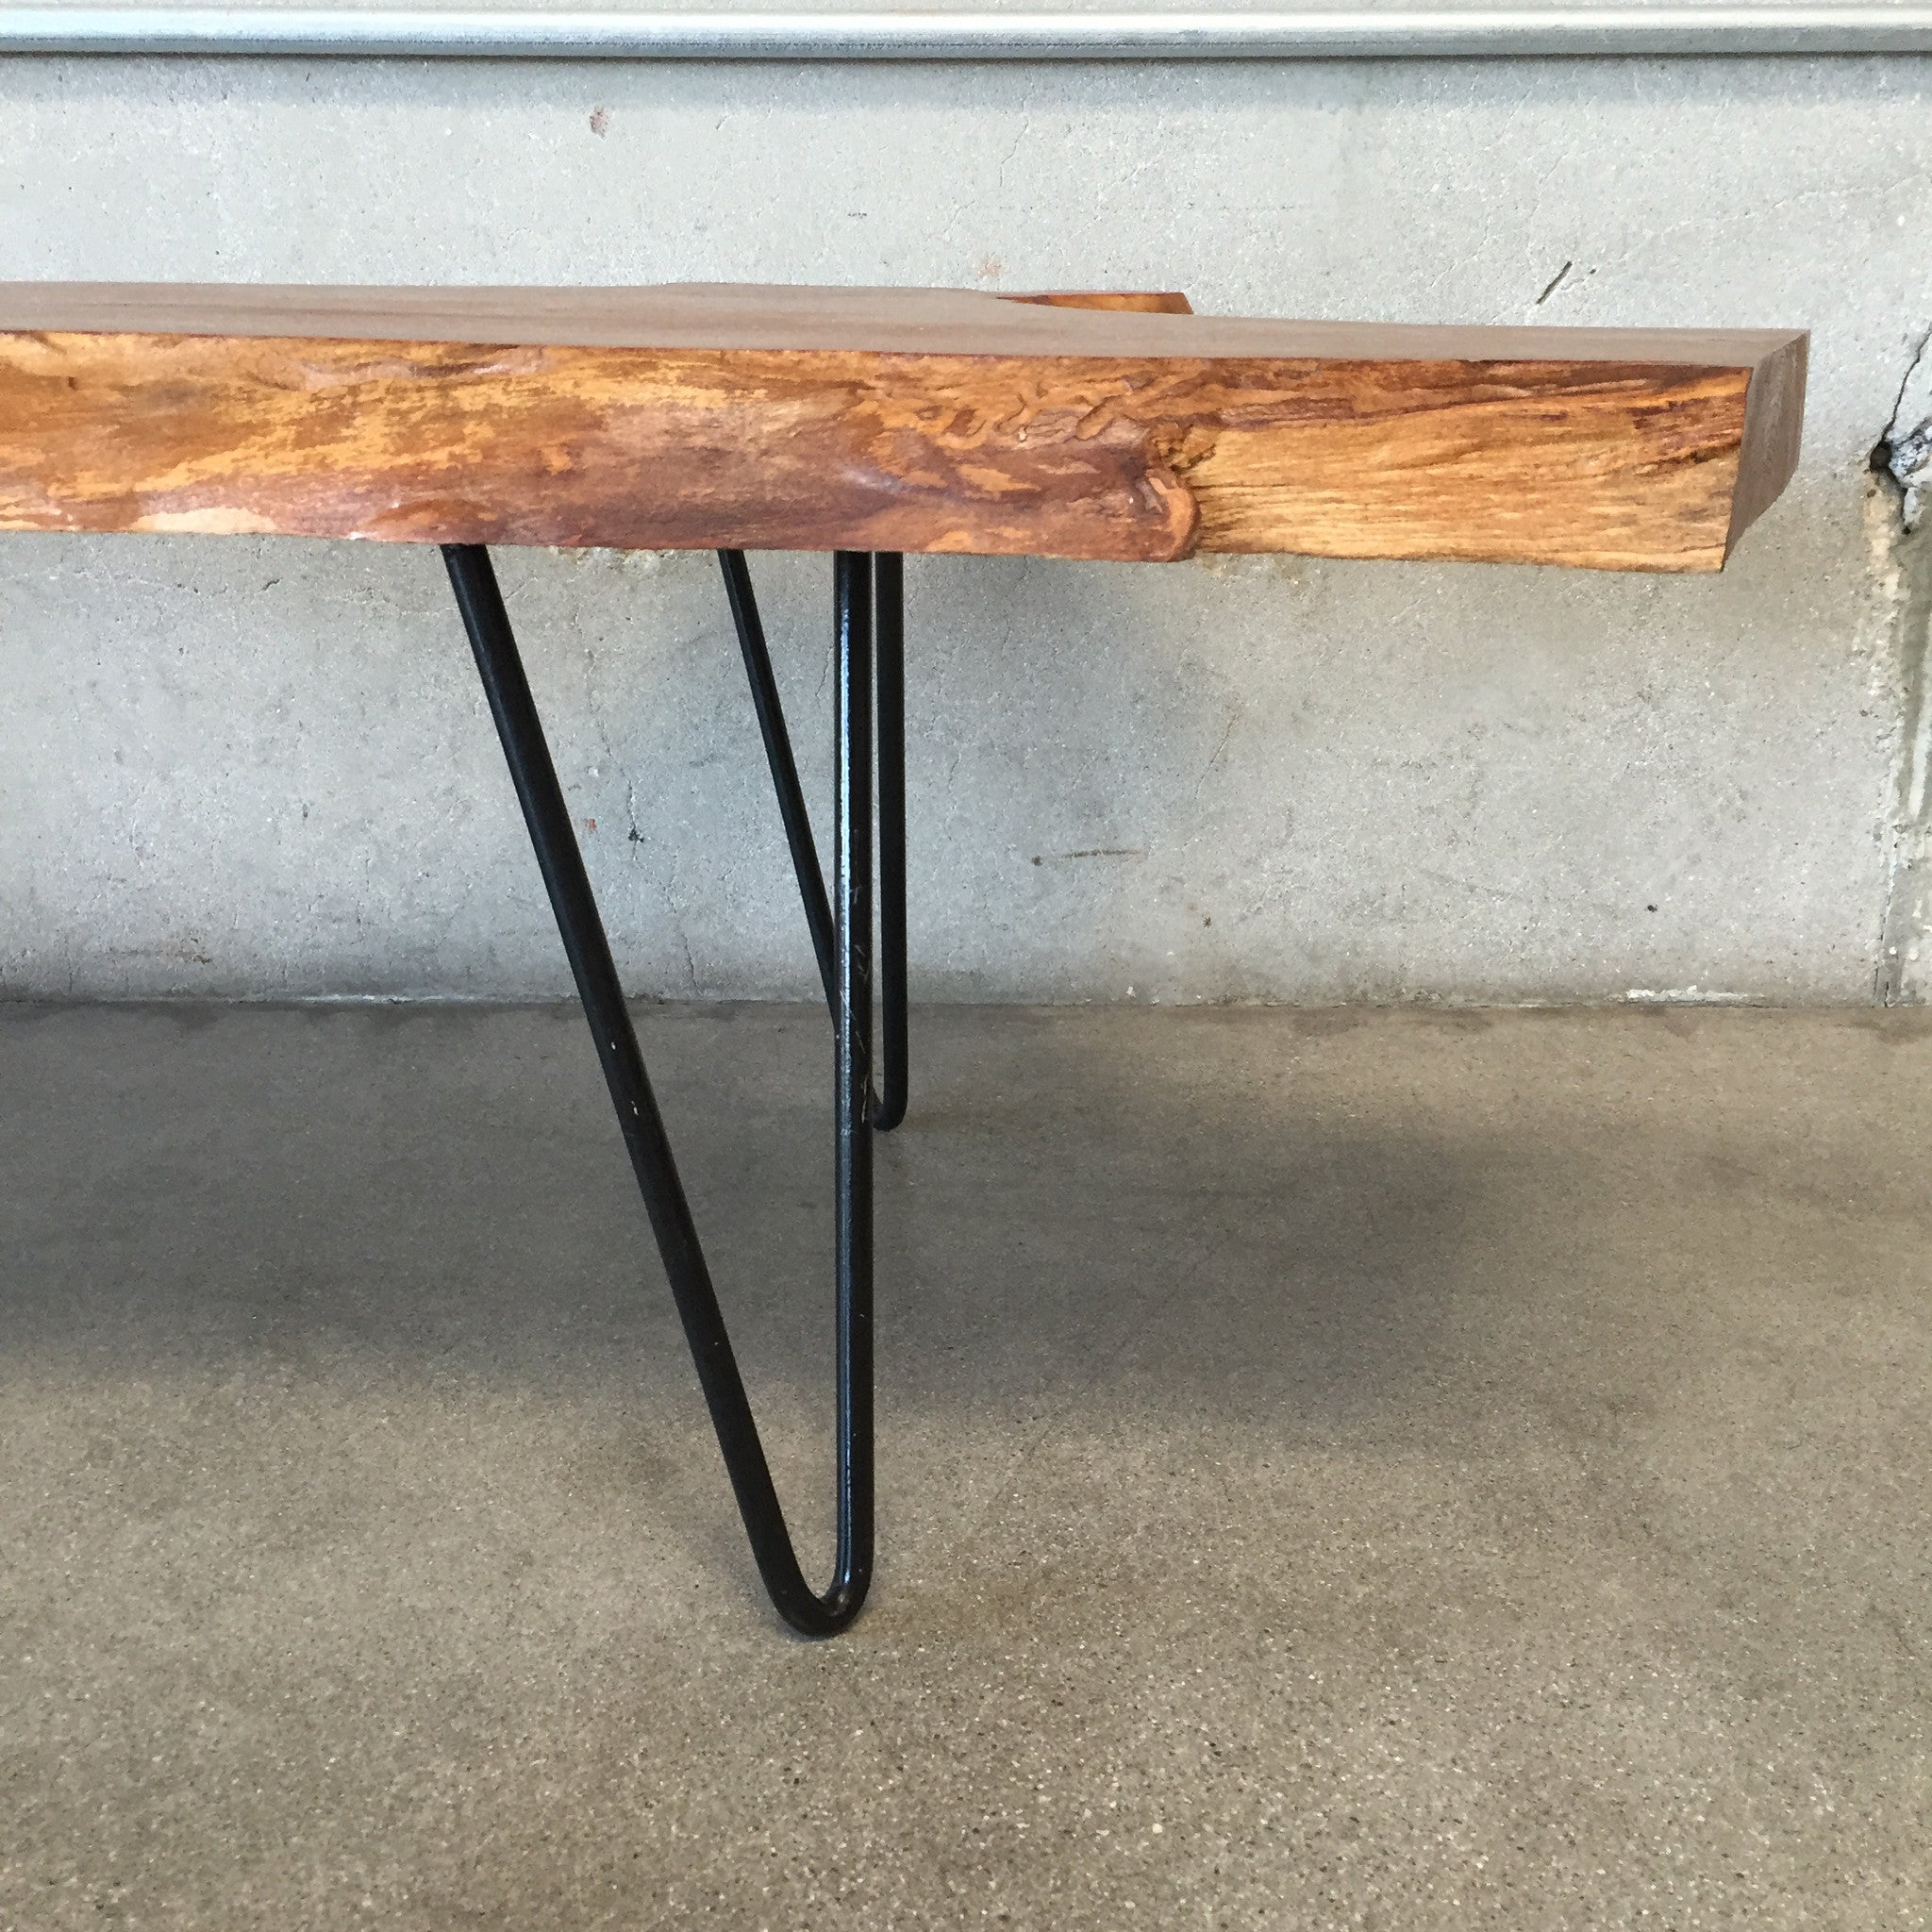 Burl Wood Coffee Table with Hairpin Legs – UrbanAmericana